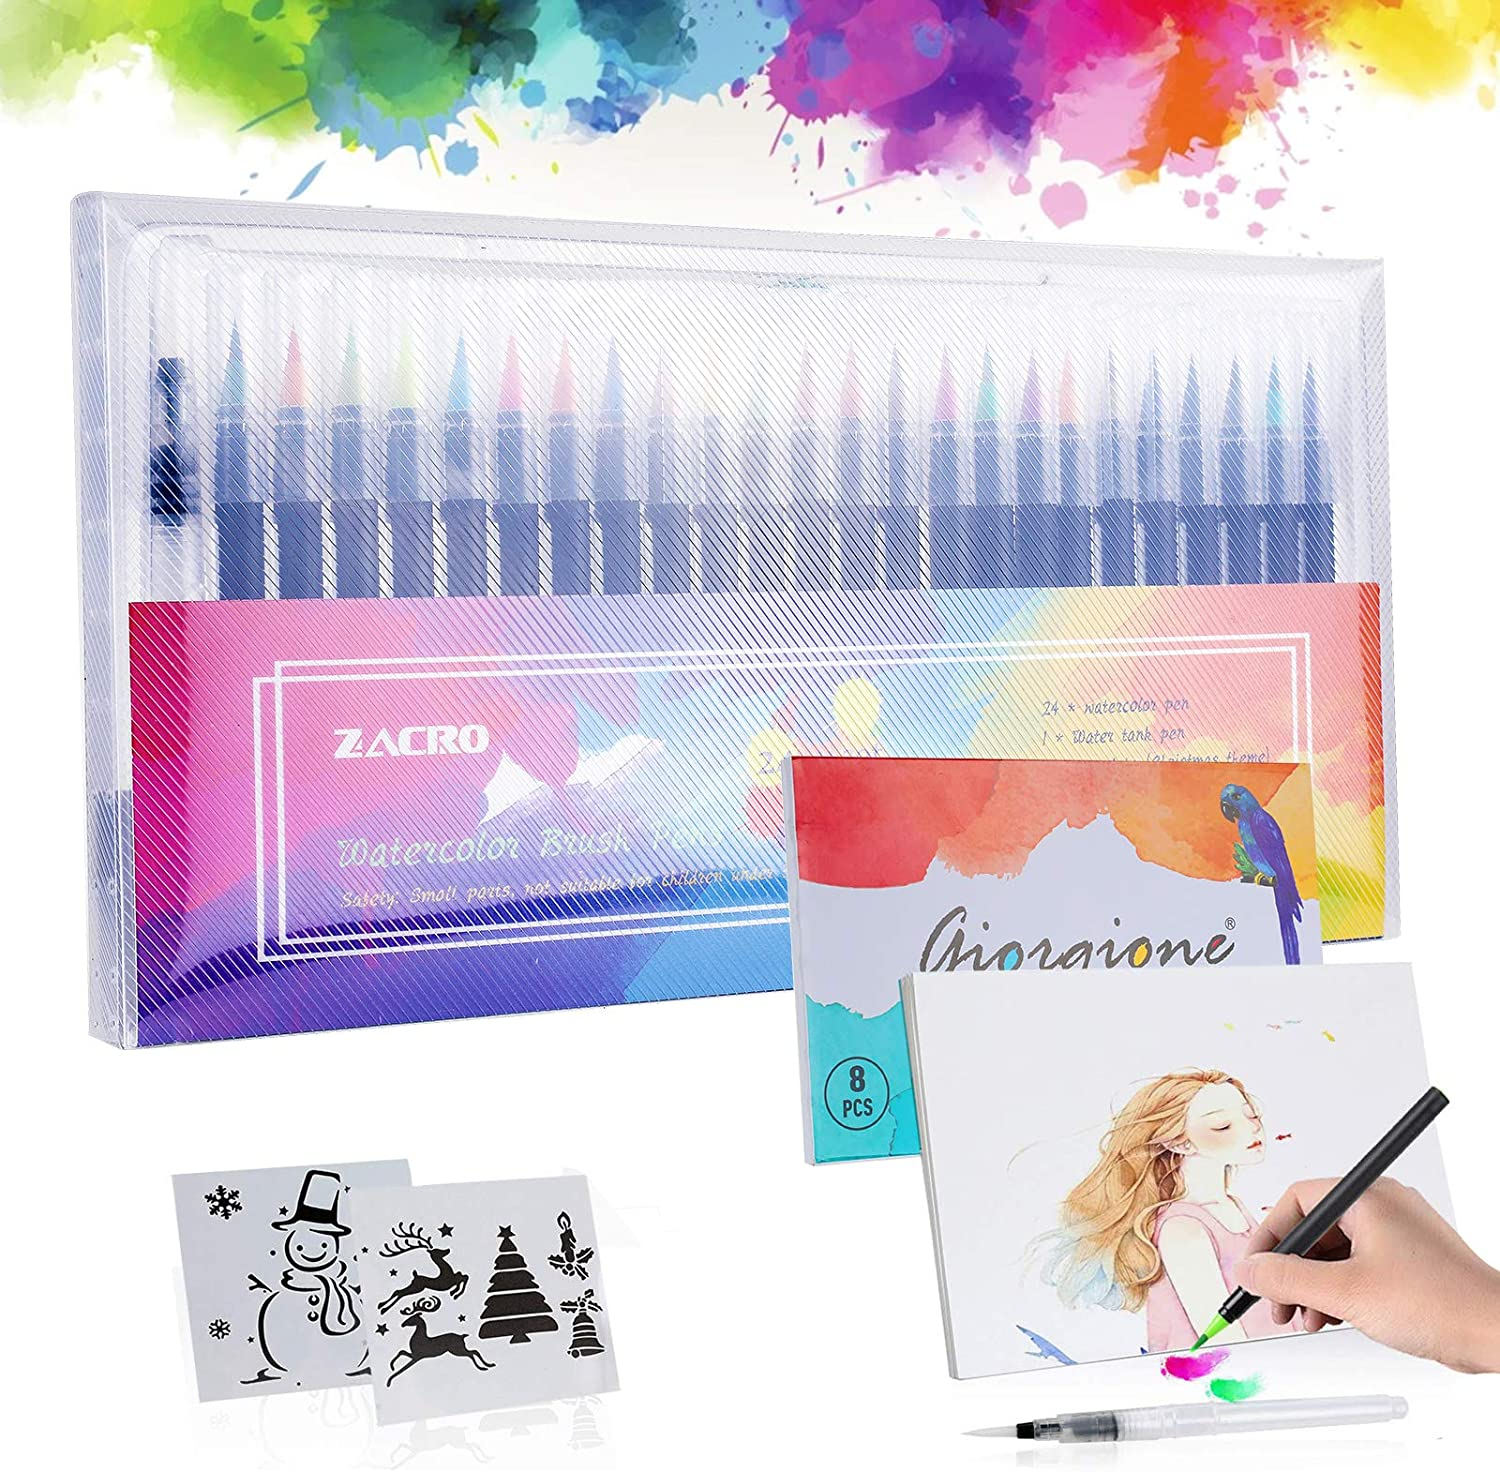 Zacro 24 Colors Watercolour Brush Pen Set – Only £7.69!